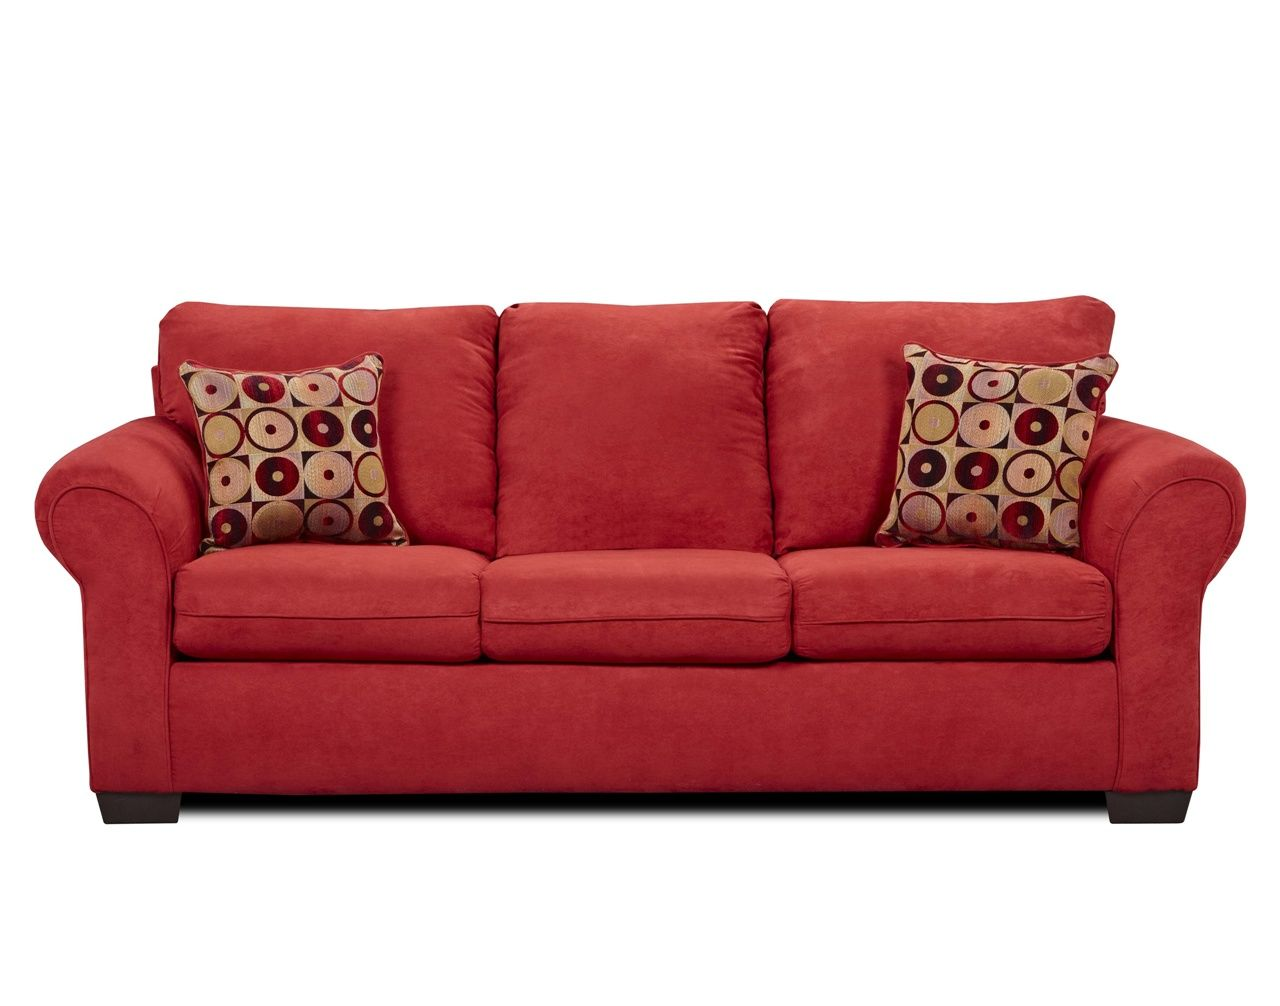 unique big lots sectional sofa concept-Lovely Big Lots Sectional sofa Plan